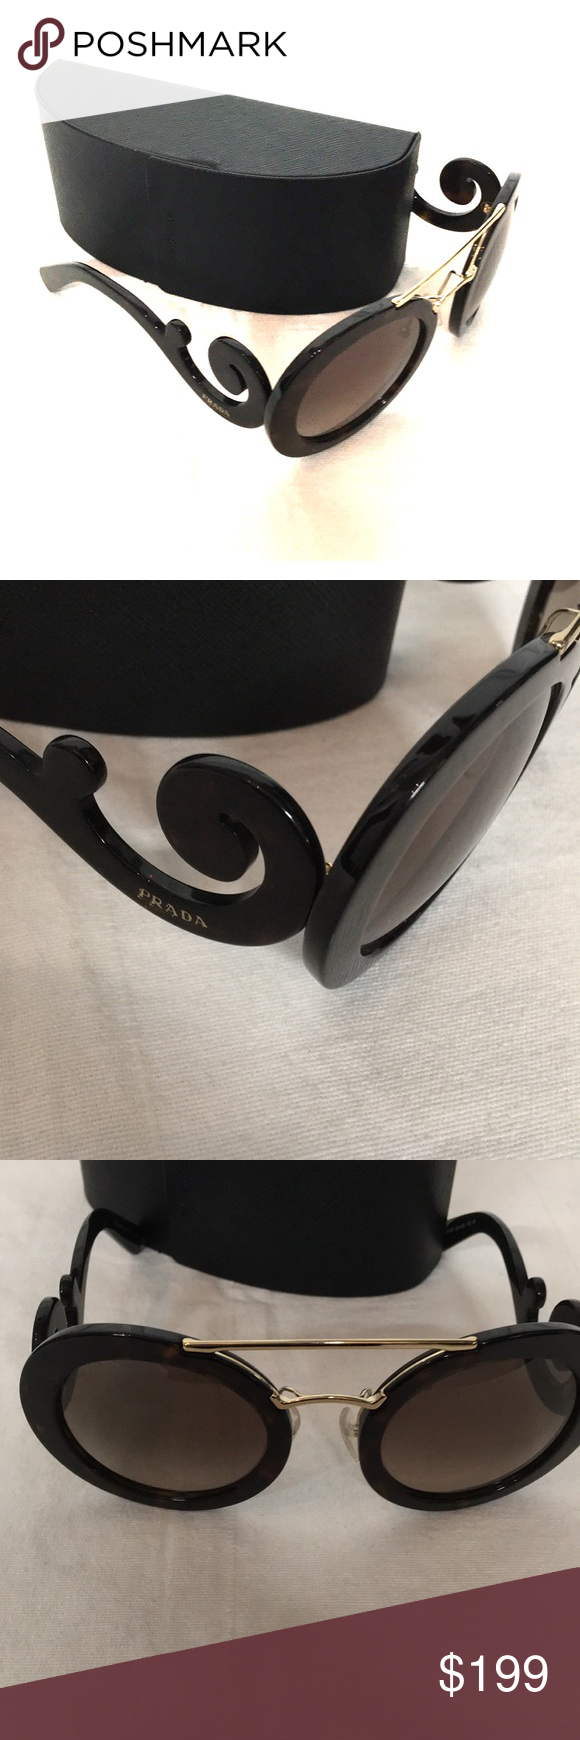 dc6d617cb41a3 Prada Tortoise Baroque Sunglasses Condition  EUC Brand  Prada Size   Measurements Make Offers💕💕 Feel free to ask questions!🎉🎊🎉 Prada  Accessories ...